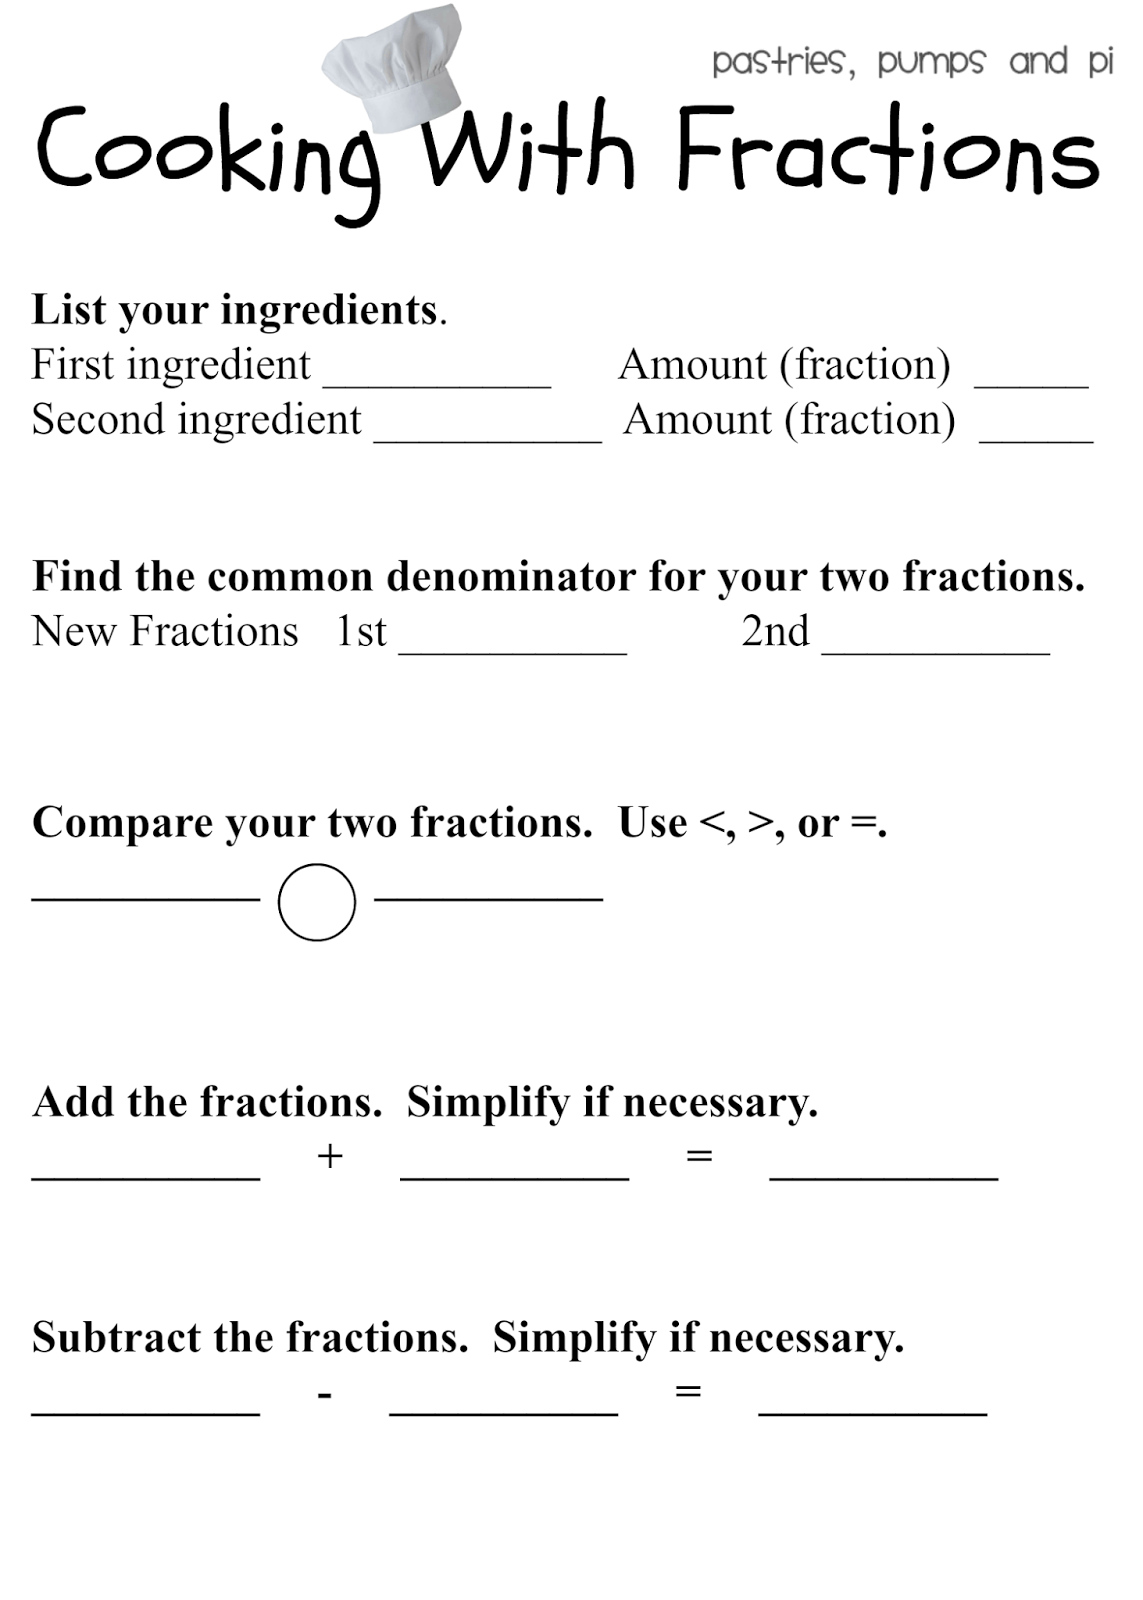 Cooking With Fractions Worksheets